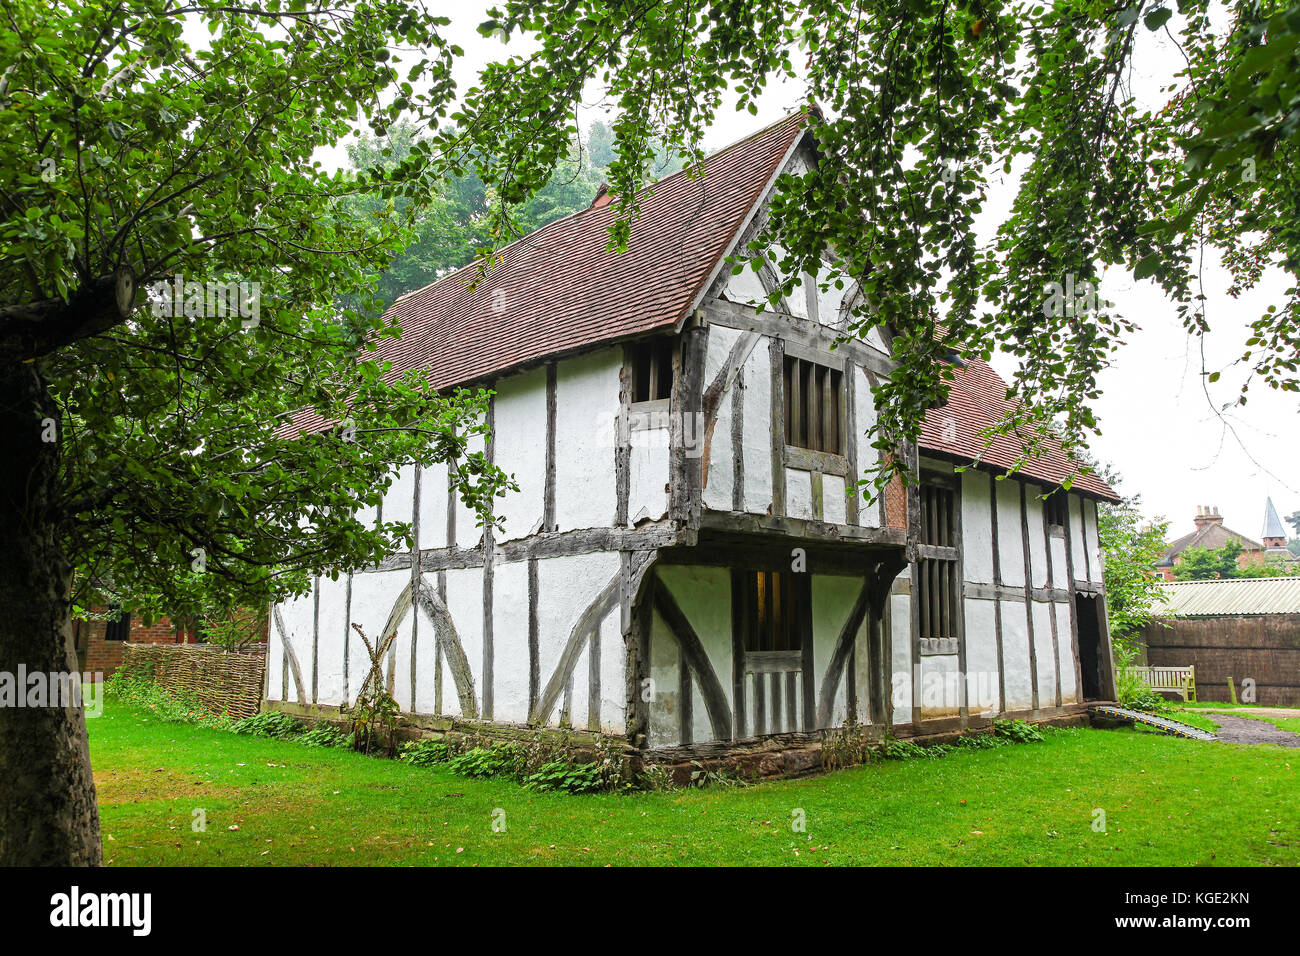 The Town House, timber-framed 16th century merchant's house at the Avoncroft Museum of Buildings, Stoke Heath, - Stock Image